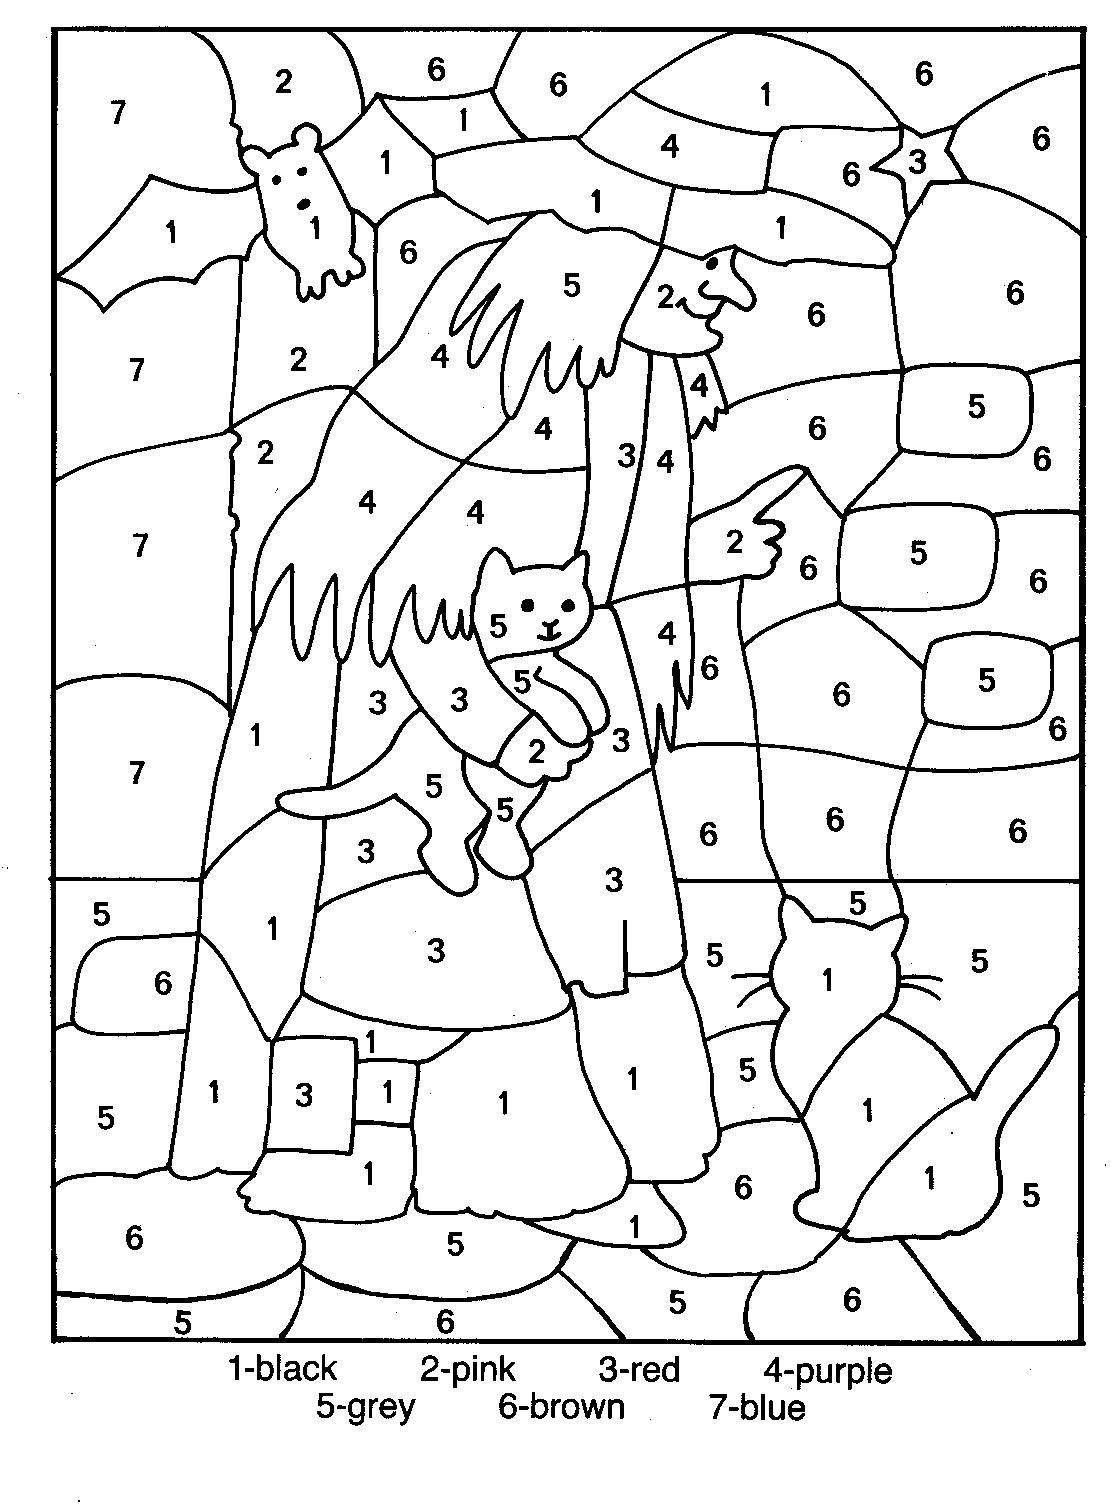 coloring sheets with numbers color by number coloring pages to download and print for free coloring sheets with numbers